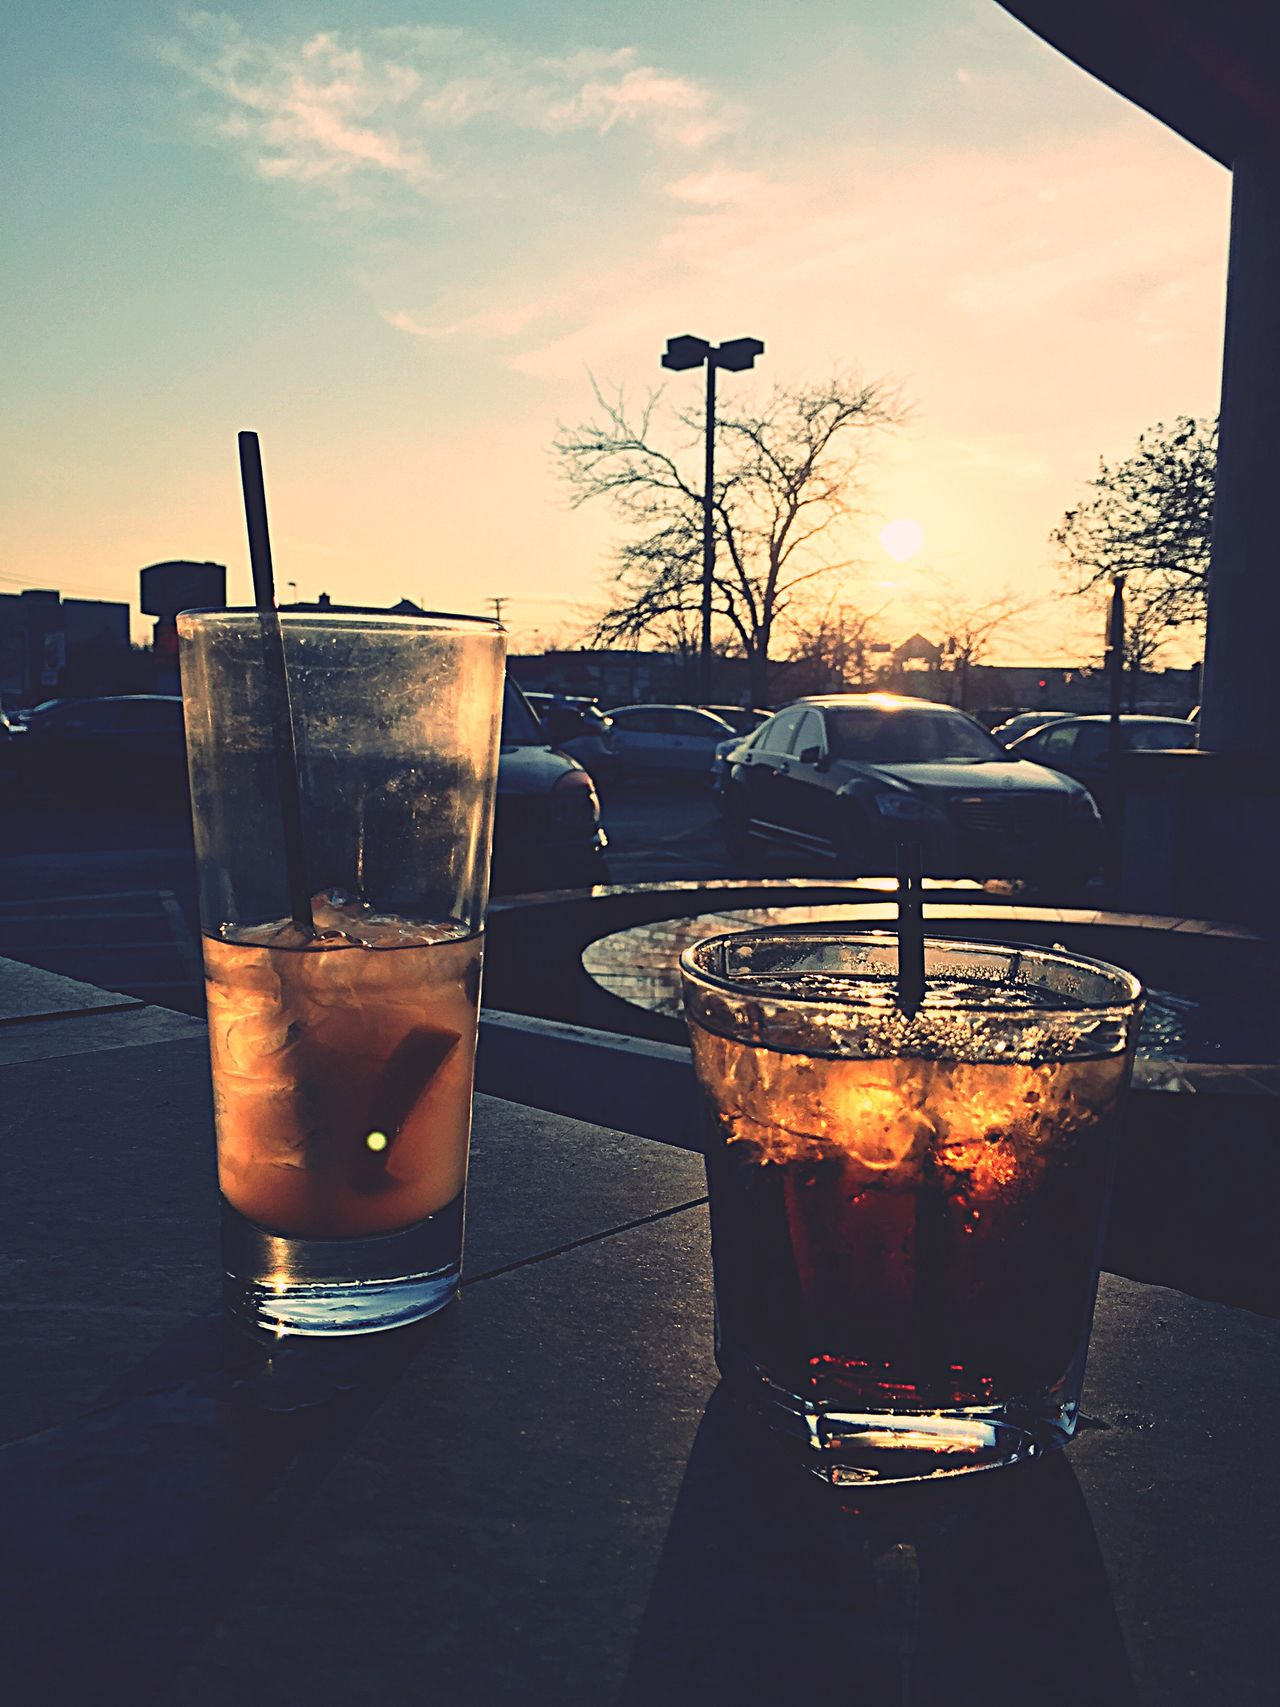 Check This Out Drinks Drinks! Hello World Out Outside Beverage Liquor Ice Ice Cube Glasses Sunset Sunset_collection Relaxing Duet Duo Togetherness Harmony Shotoftheday ShotOniPhone6 Fall Hotel Entrance Drinking Drinks With Friends